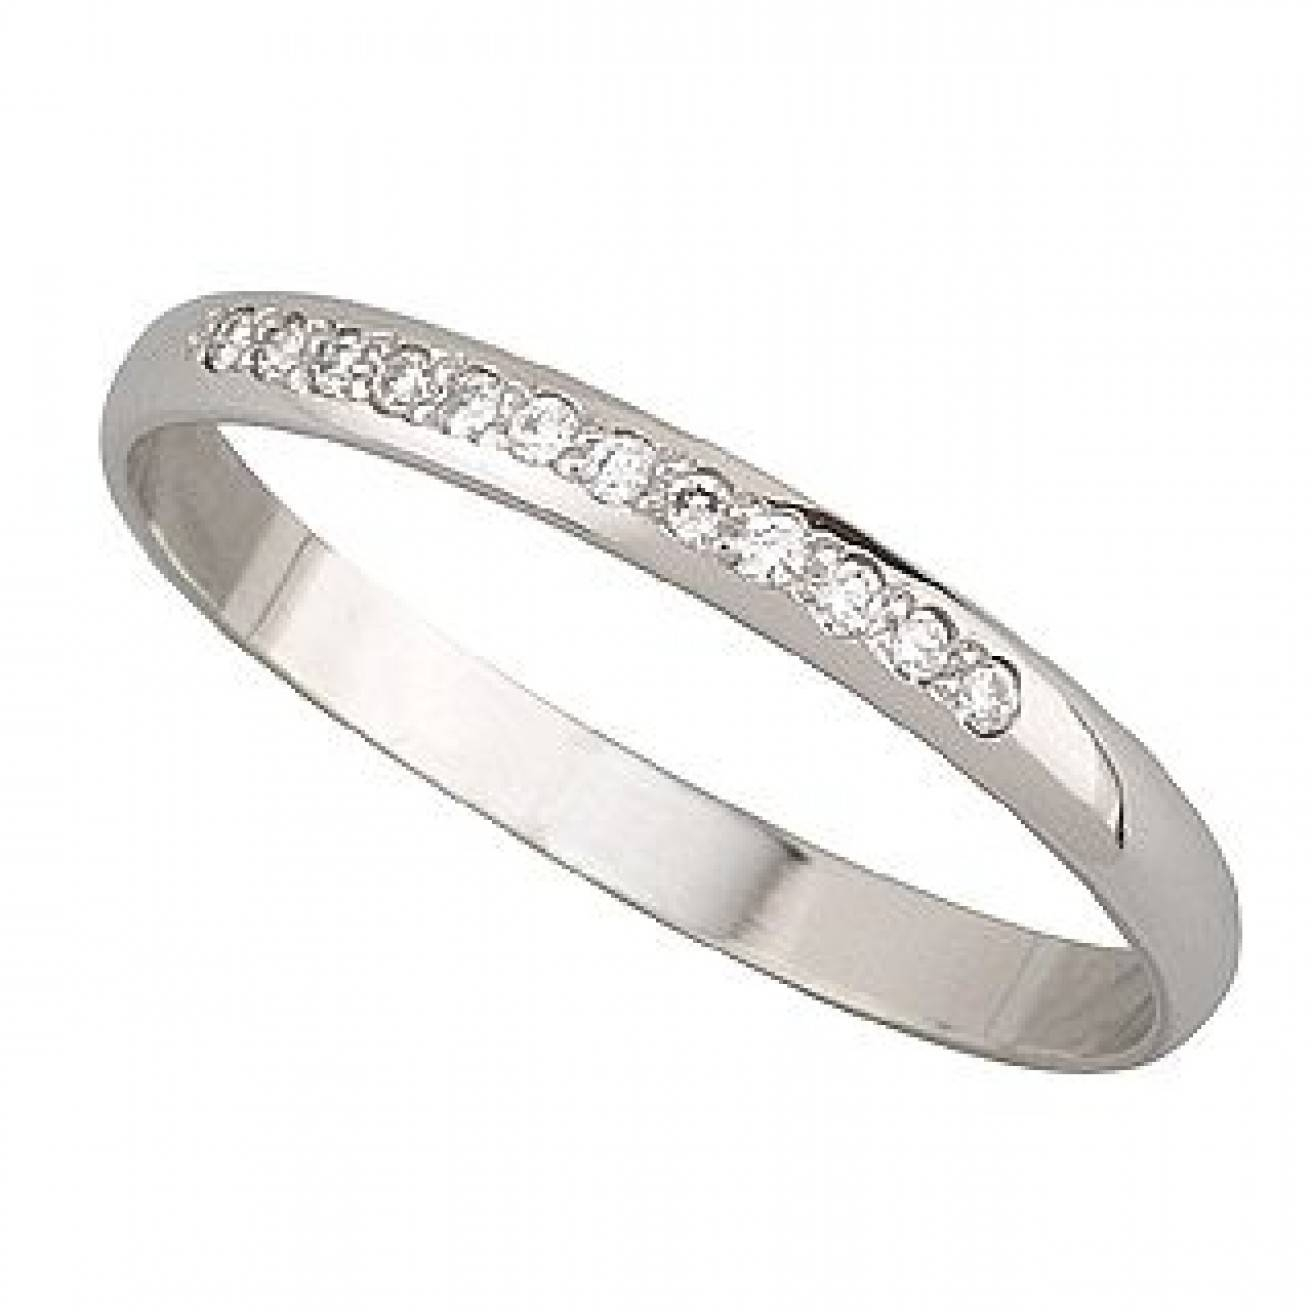 Buy Platinum Wedding Bands Online – Fraser Hart For Platinum Band Wedding Rings (View 3 of 15)